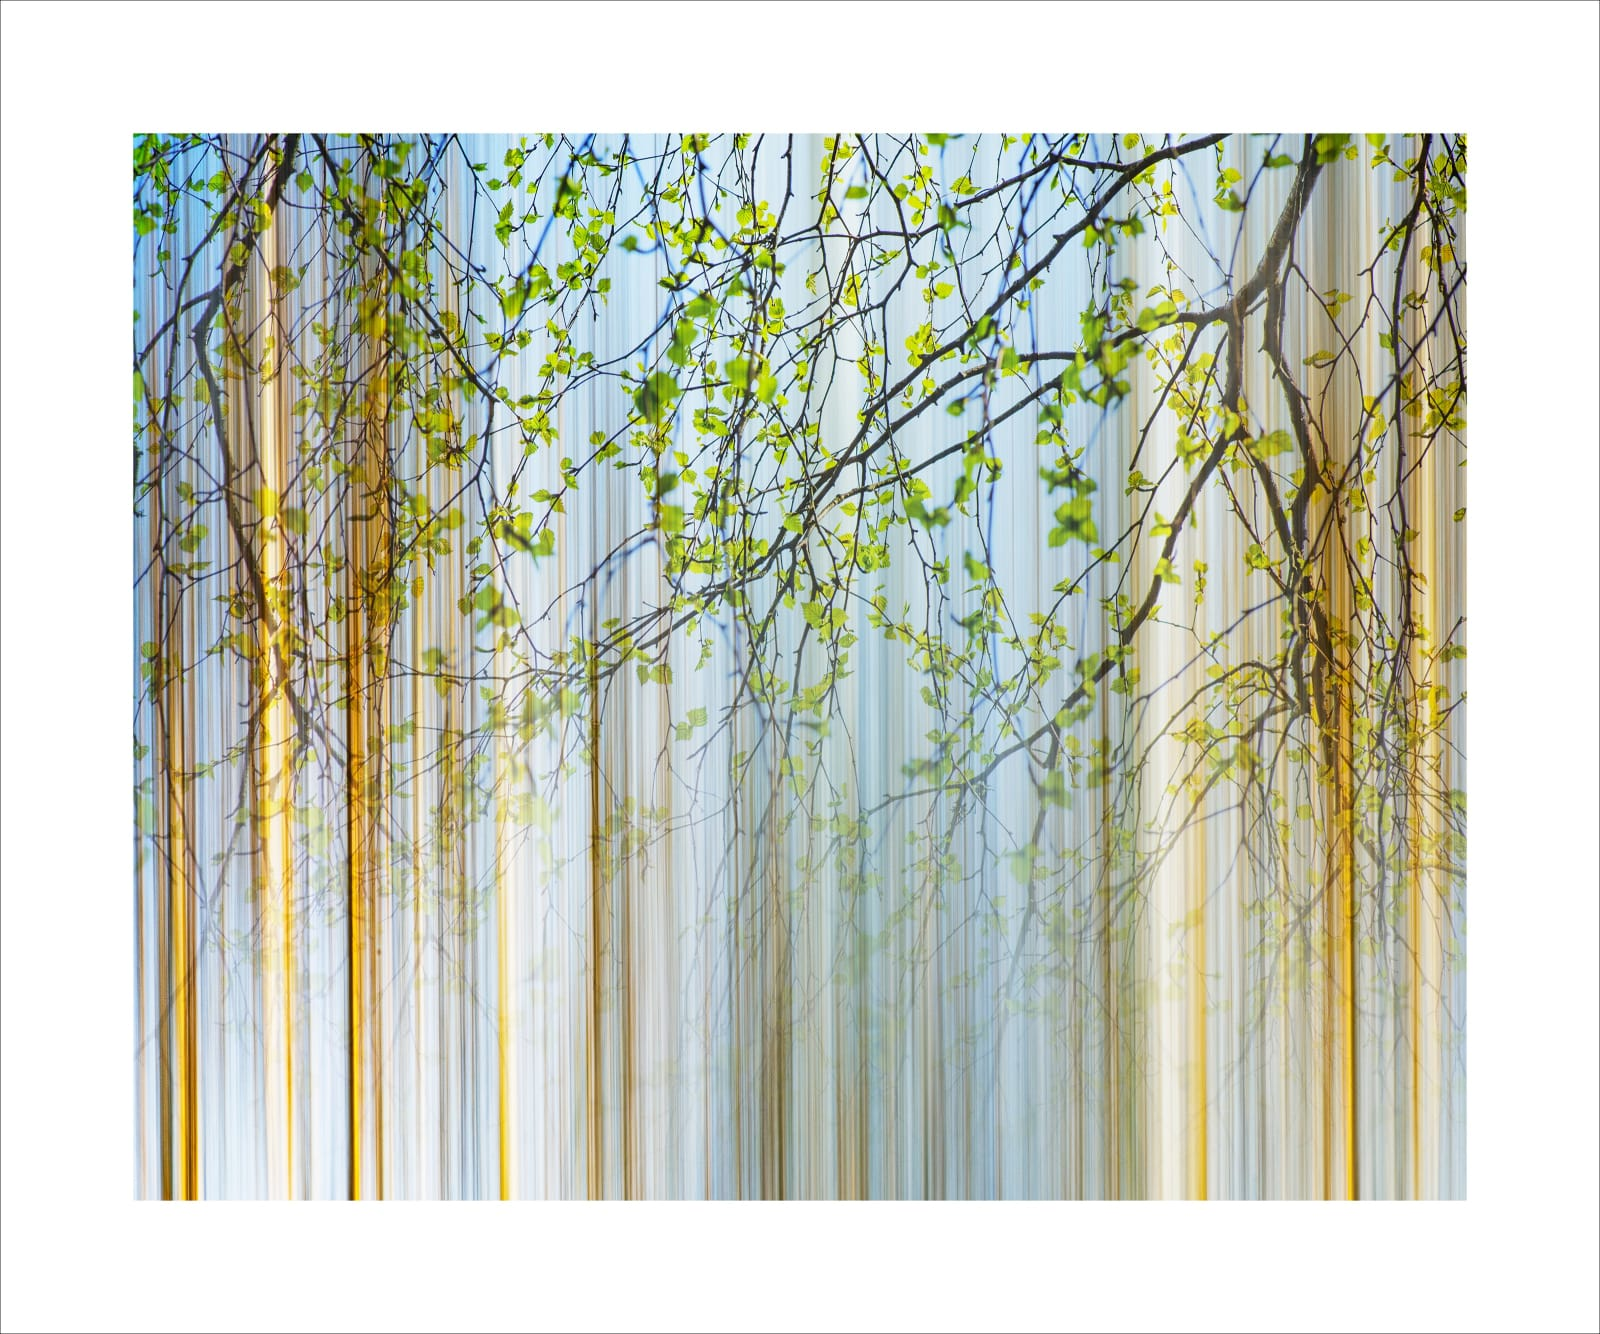 'VIRTUAL FOREST' artists proof for auction. This print is 12